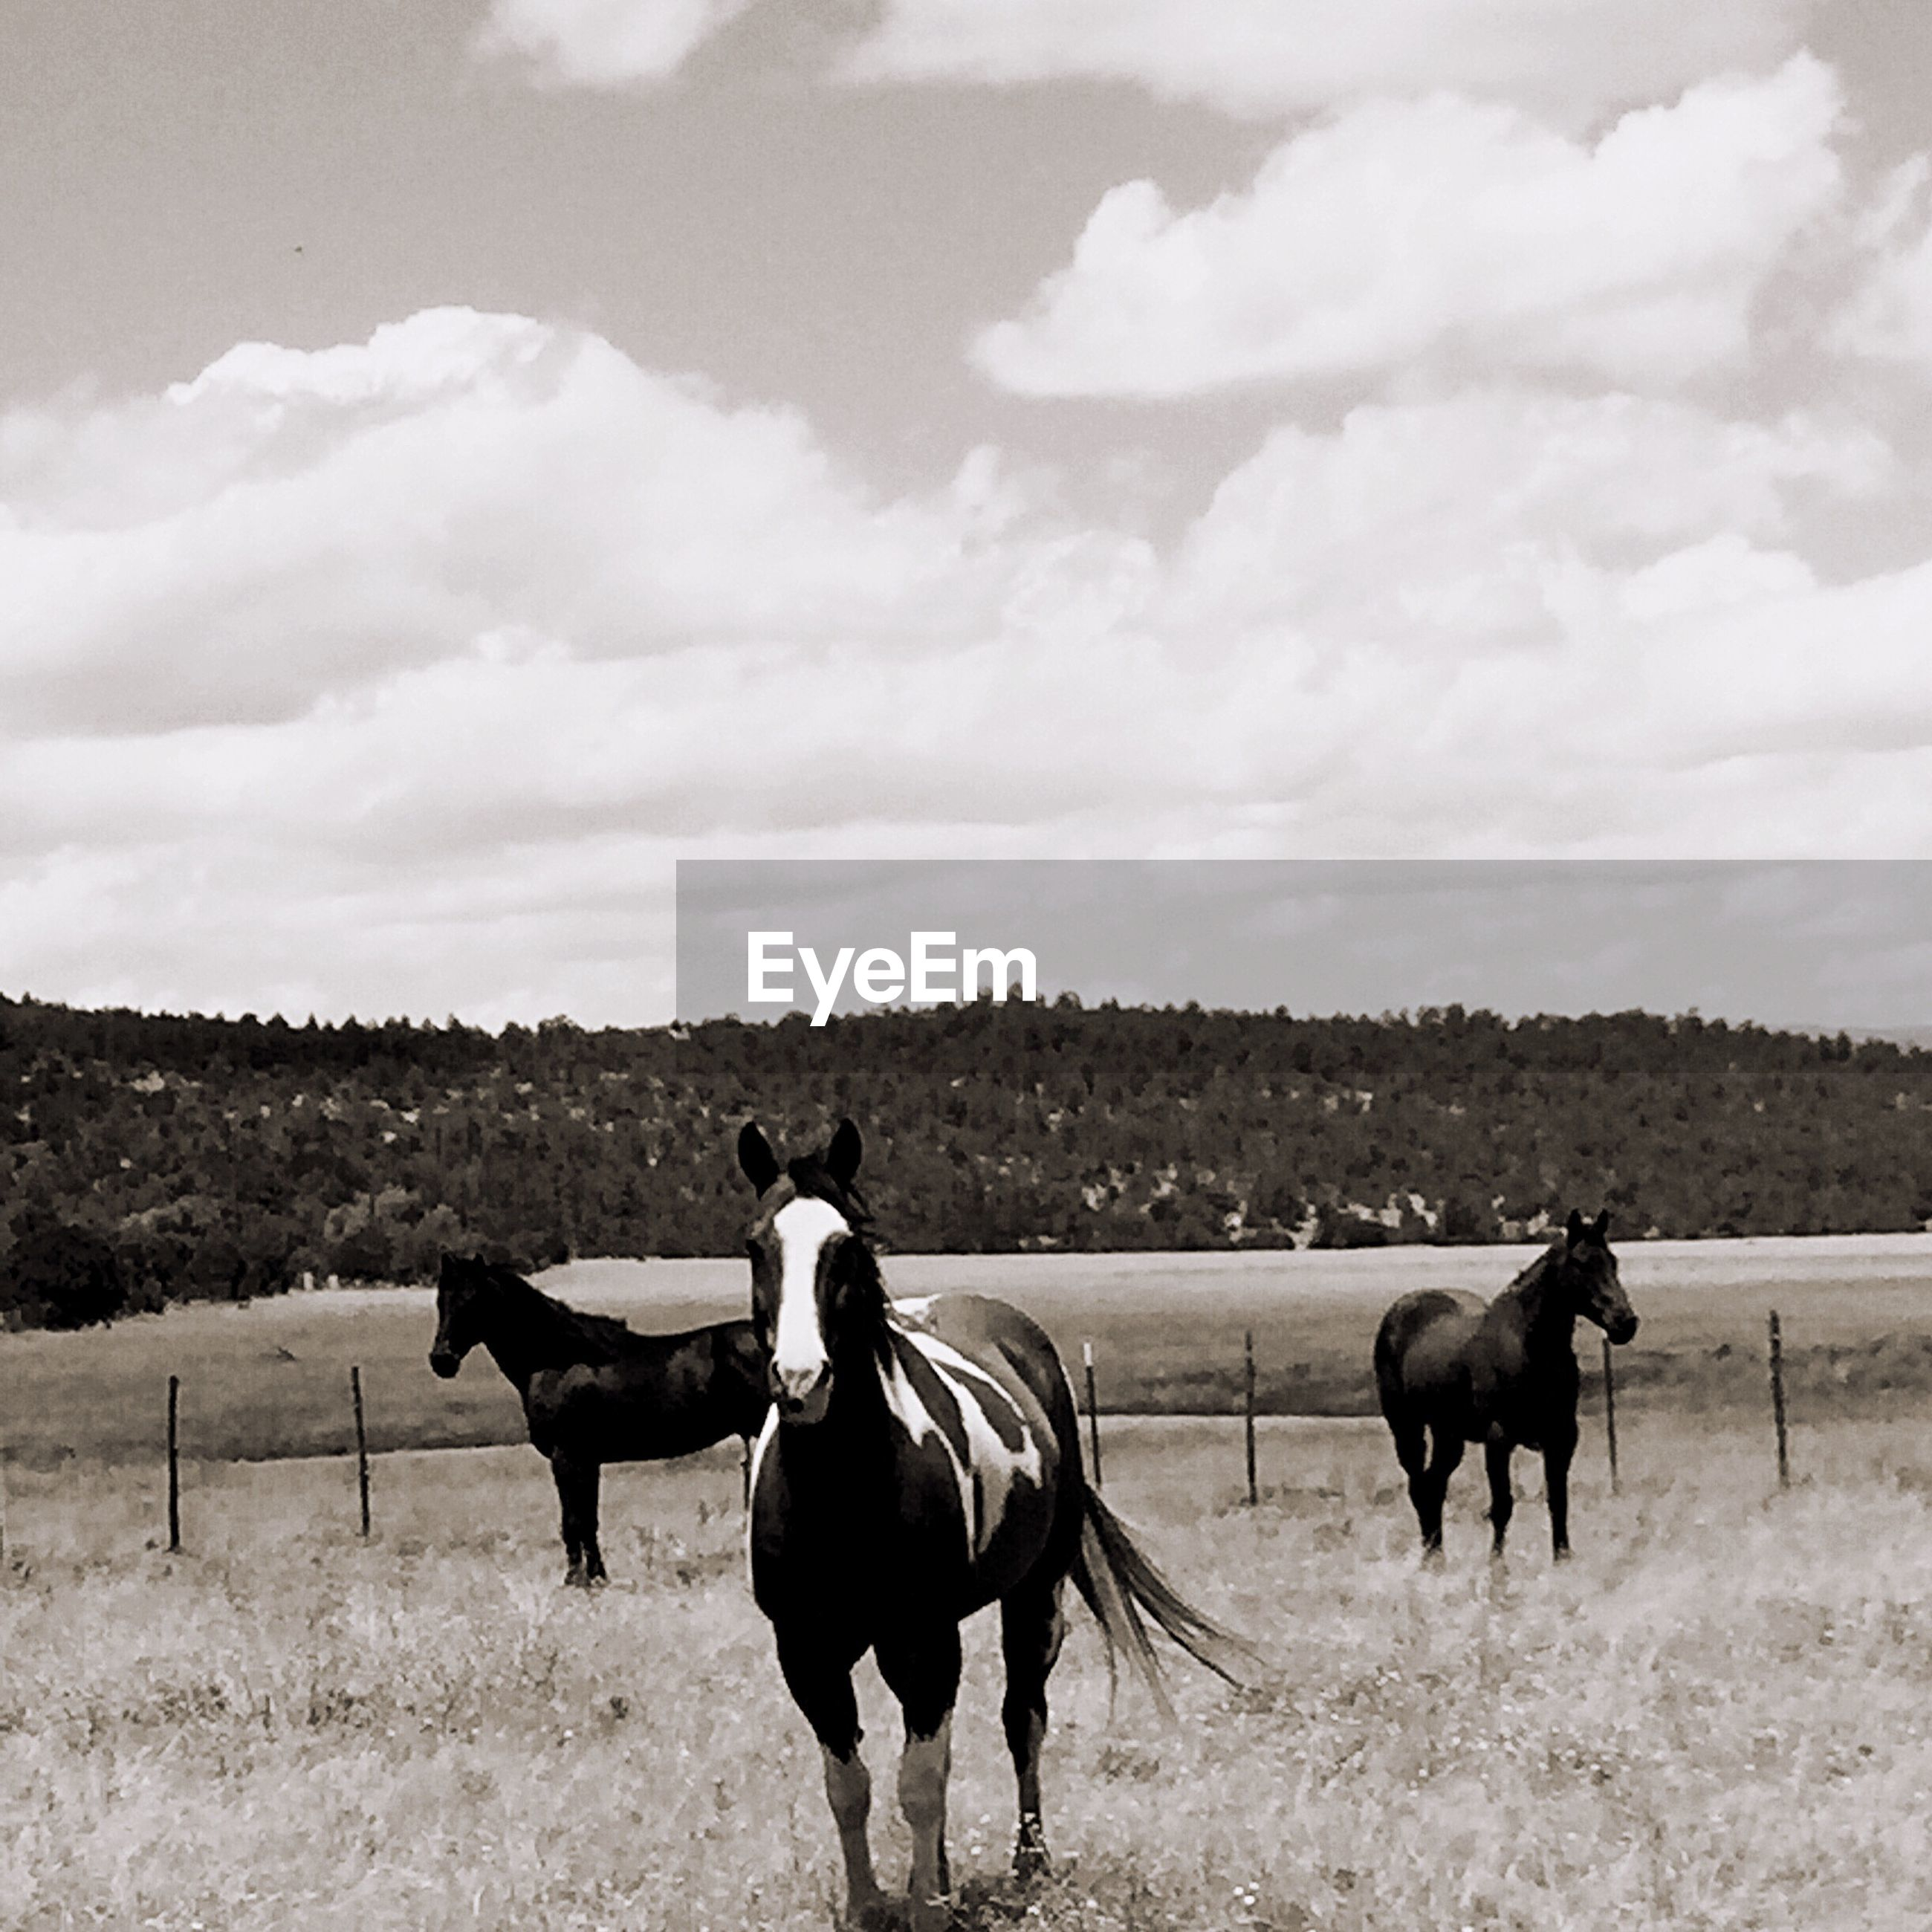 Horses on countryside landscape